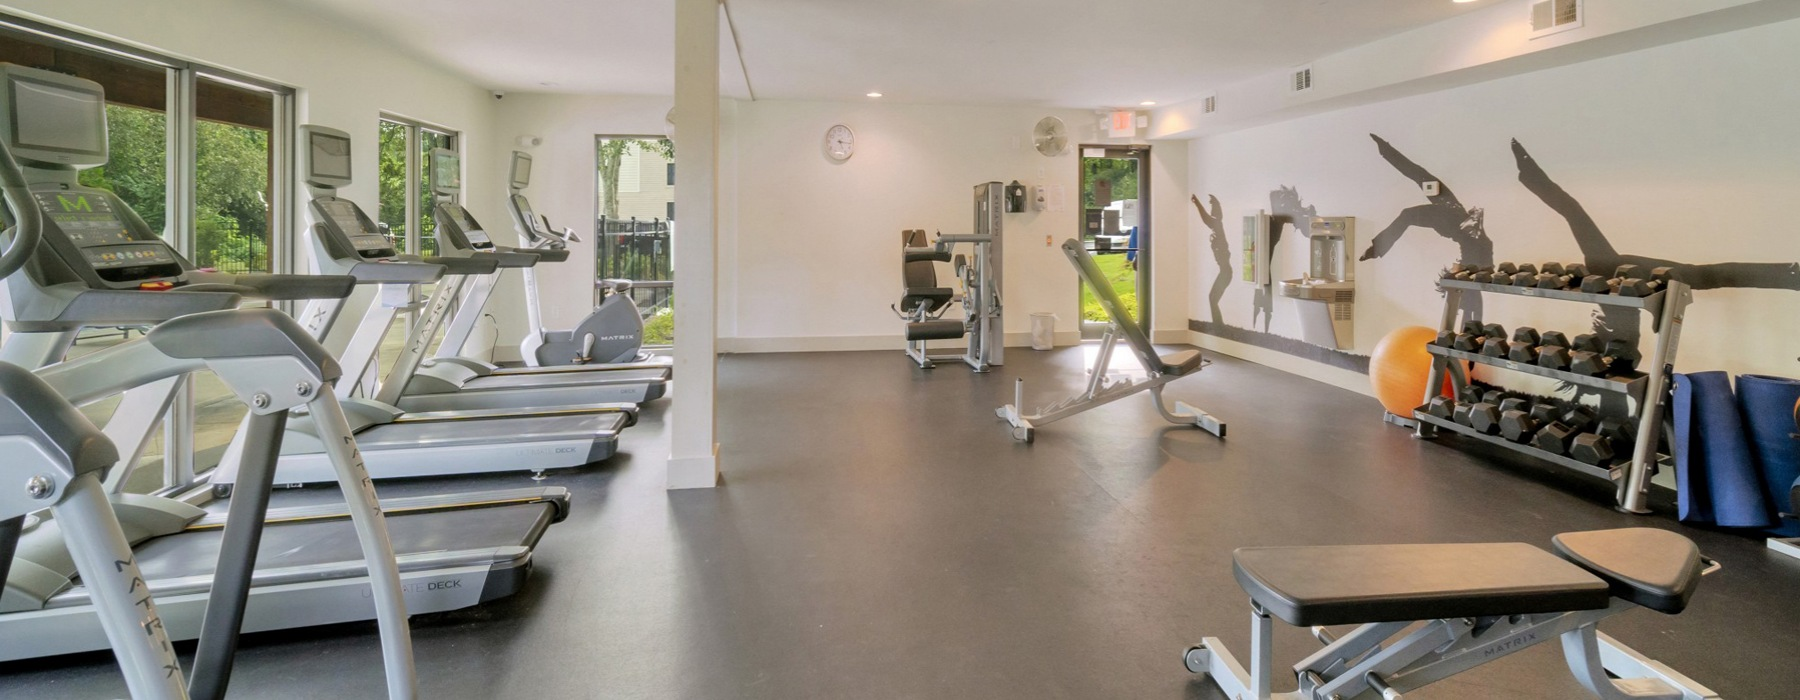 Fitness center with free weights, treadmills and ellipticals